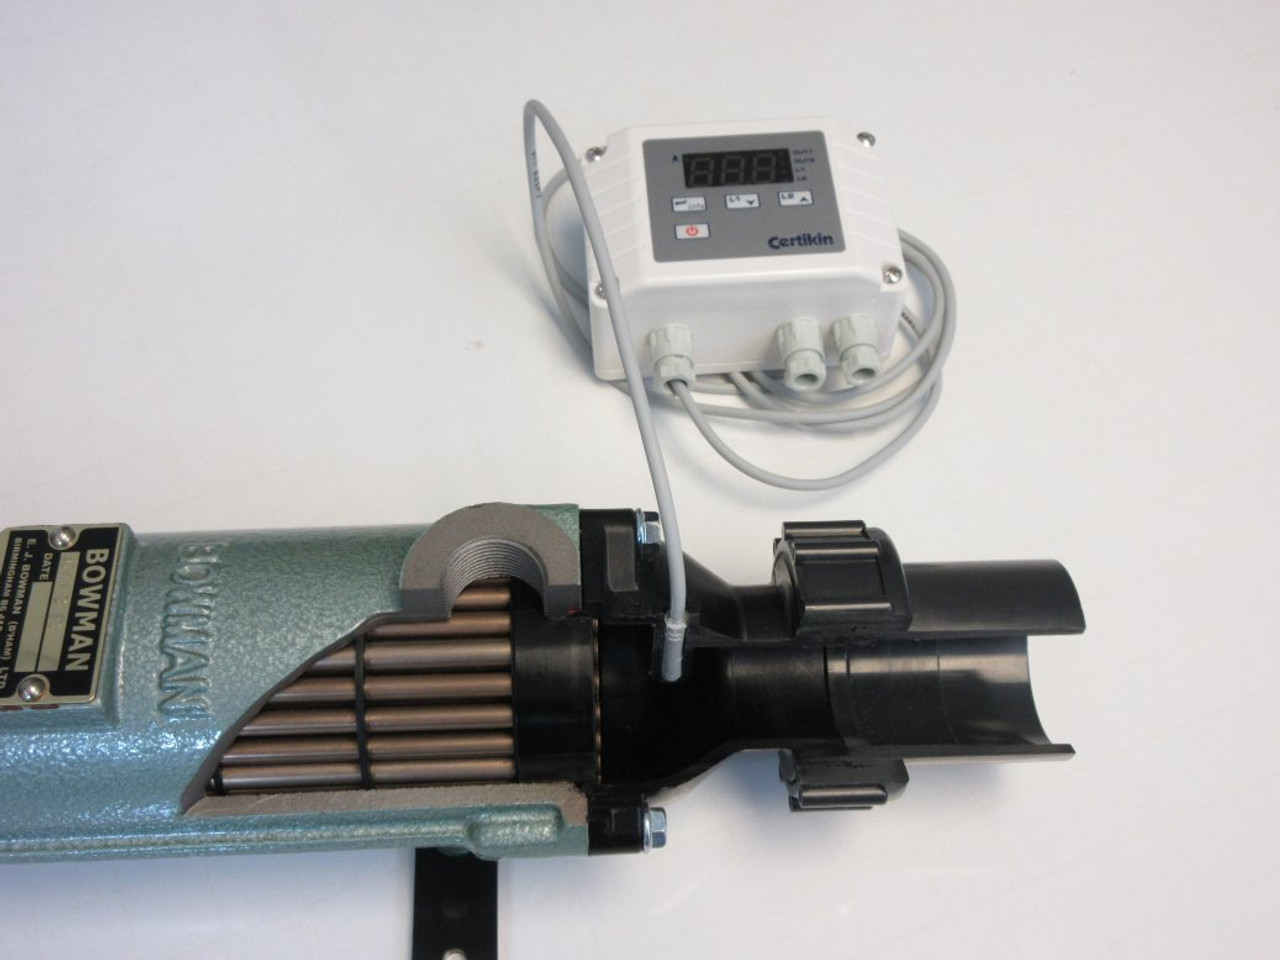 Bowman Pool Heat Exchanger thermostat in pocket (cut out view)